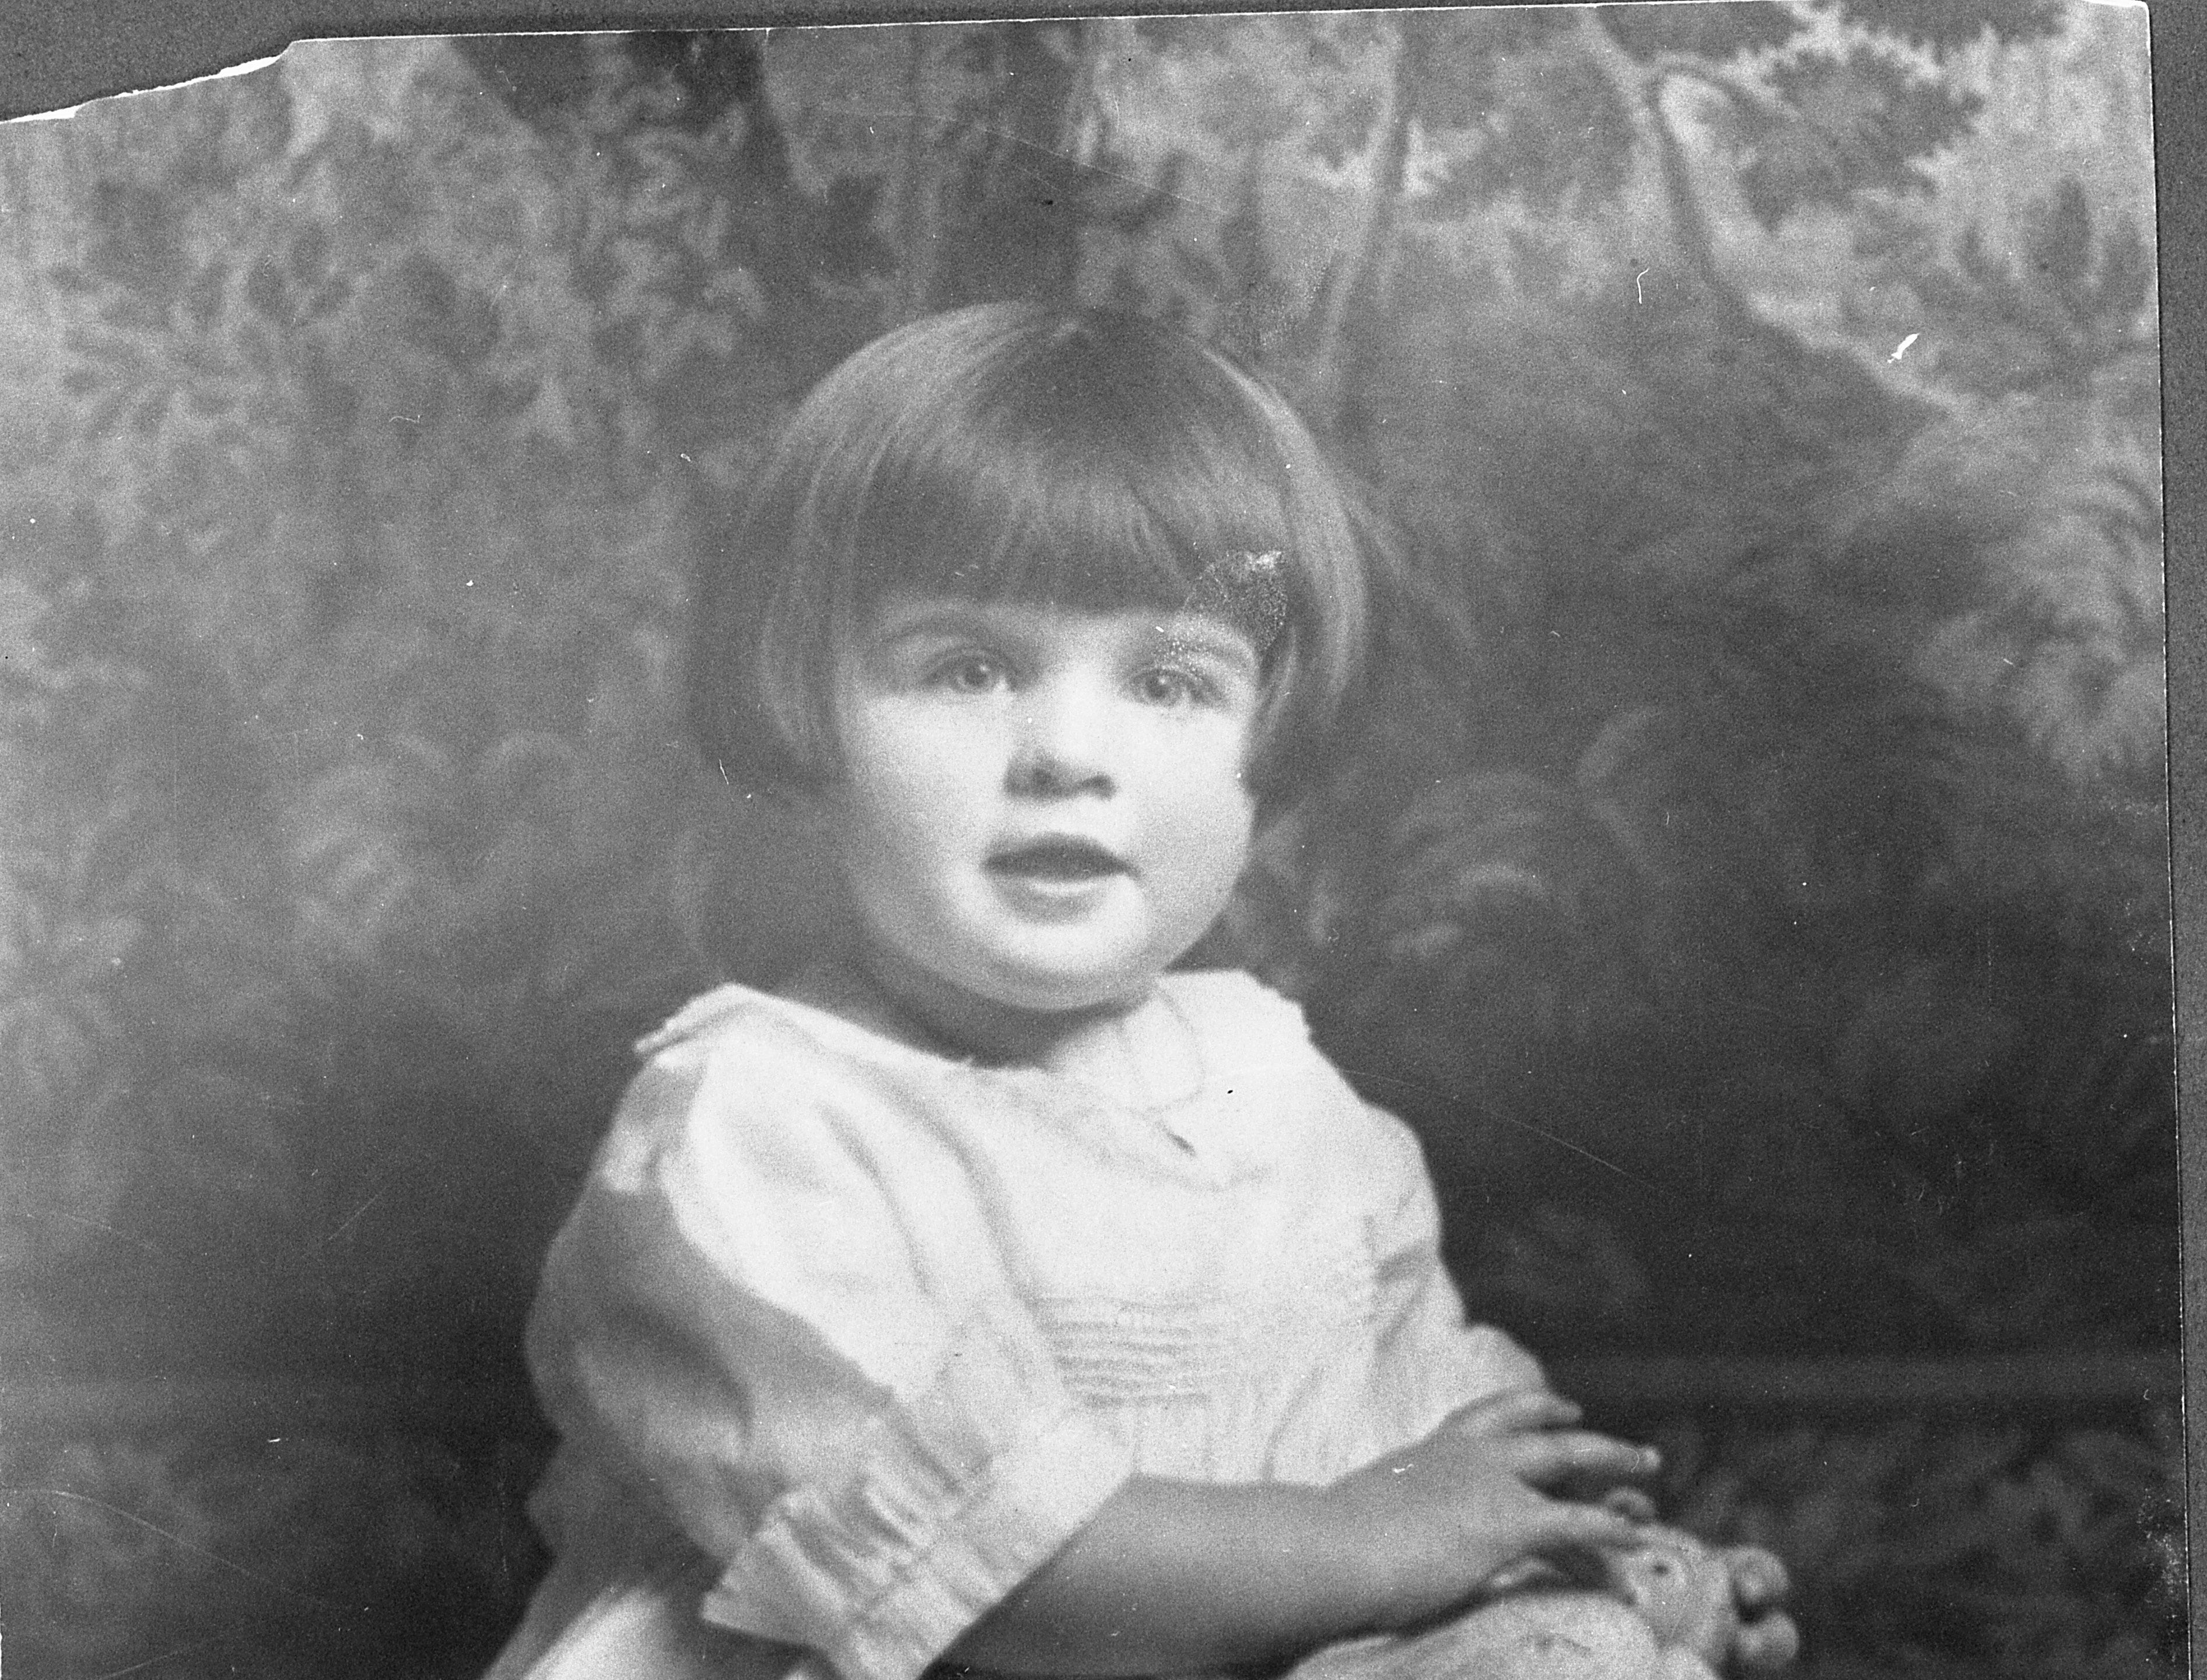 Betty, age 3, with her teddy bear.